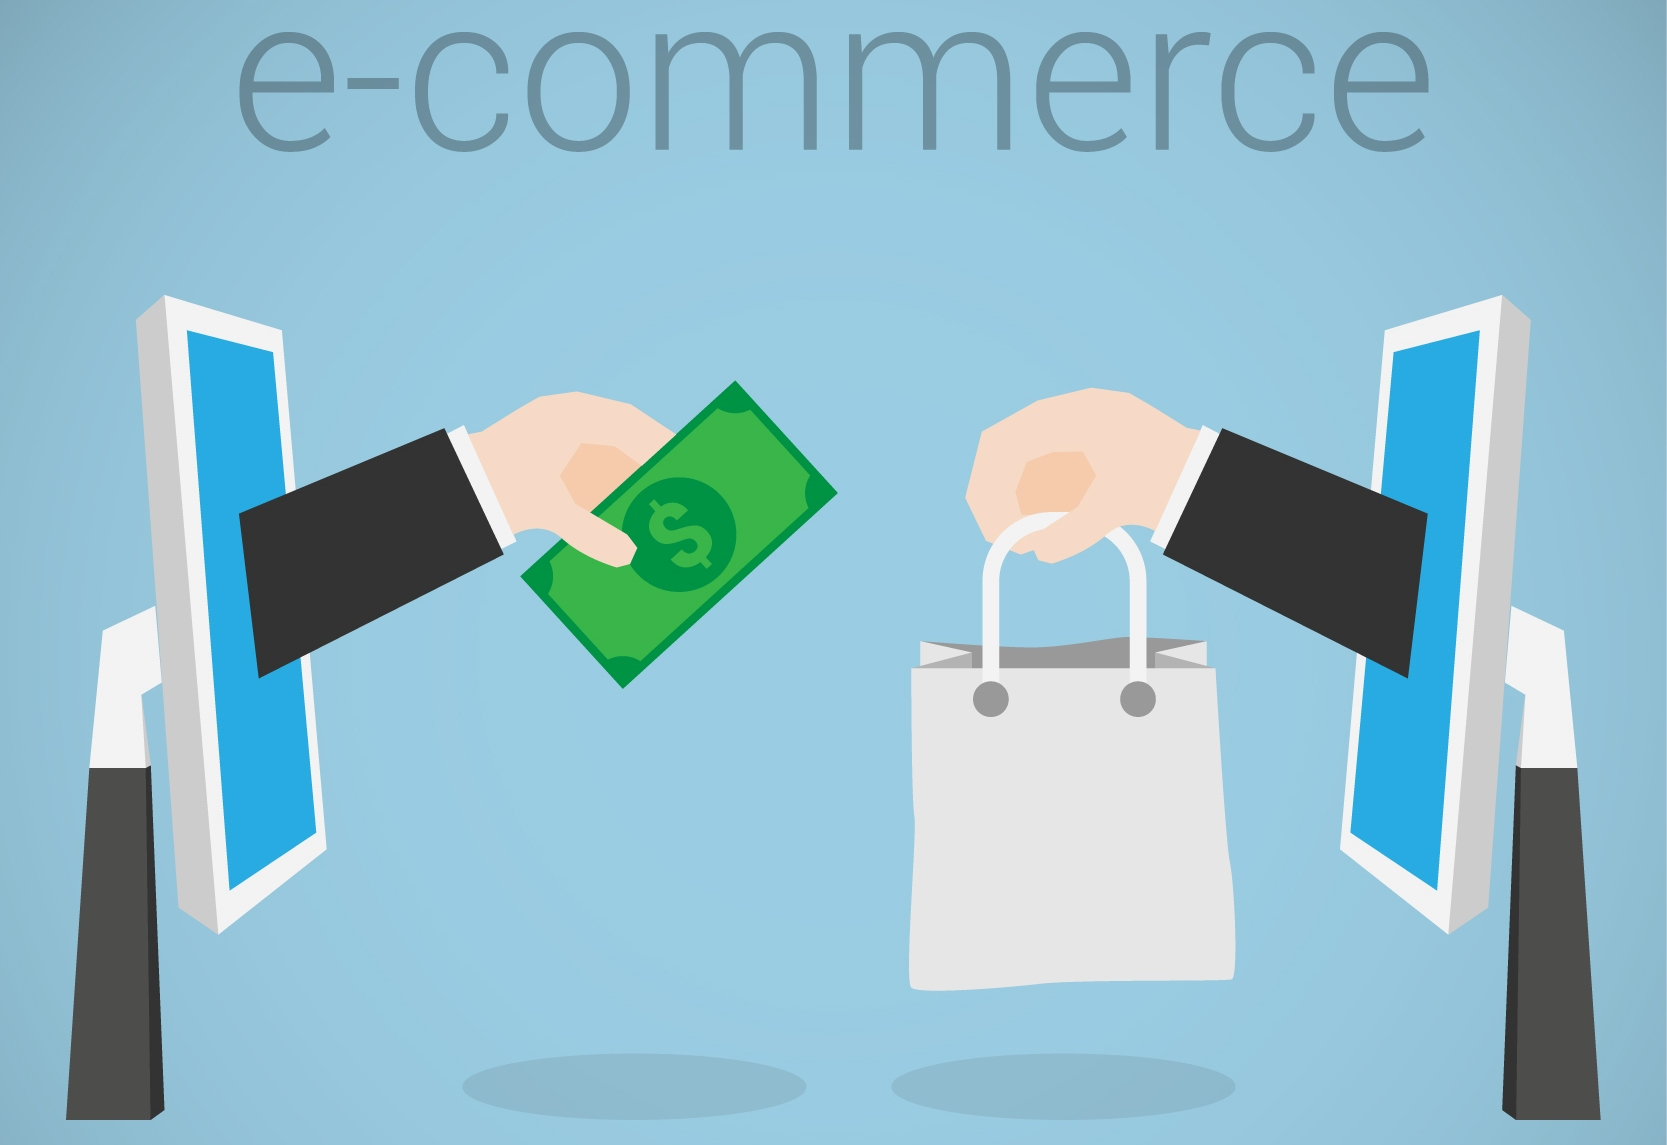 e commerce solutions for online business E-commerce refers to online stores selling products while e-business refers to any and all business solutions that use cloud or internet-based systems to run things.